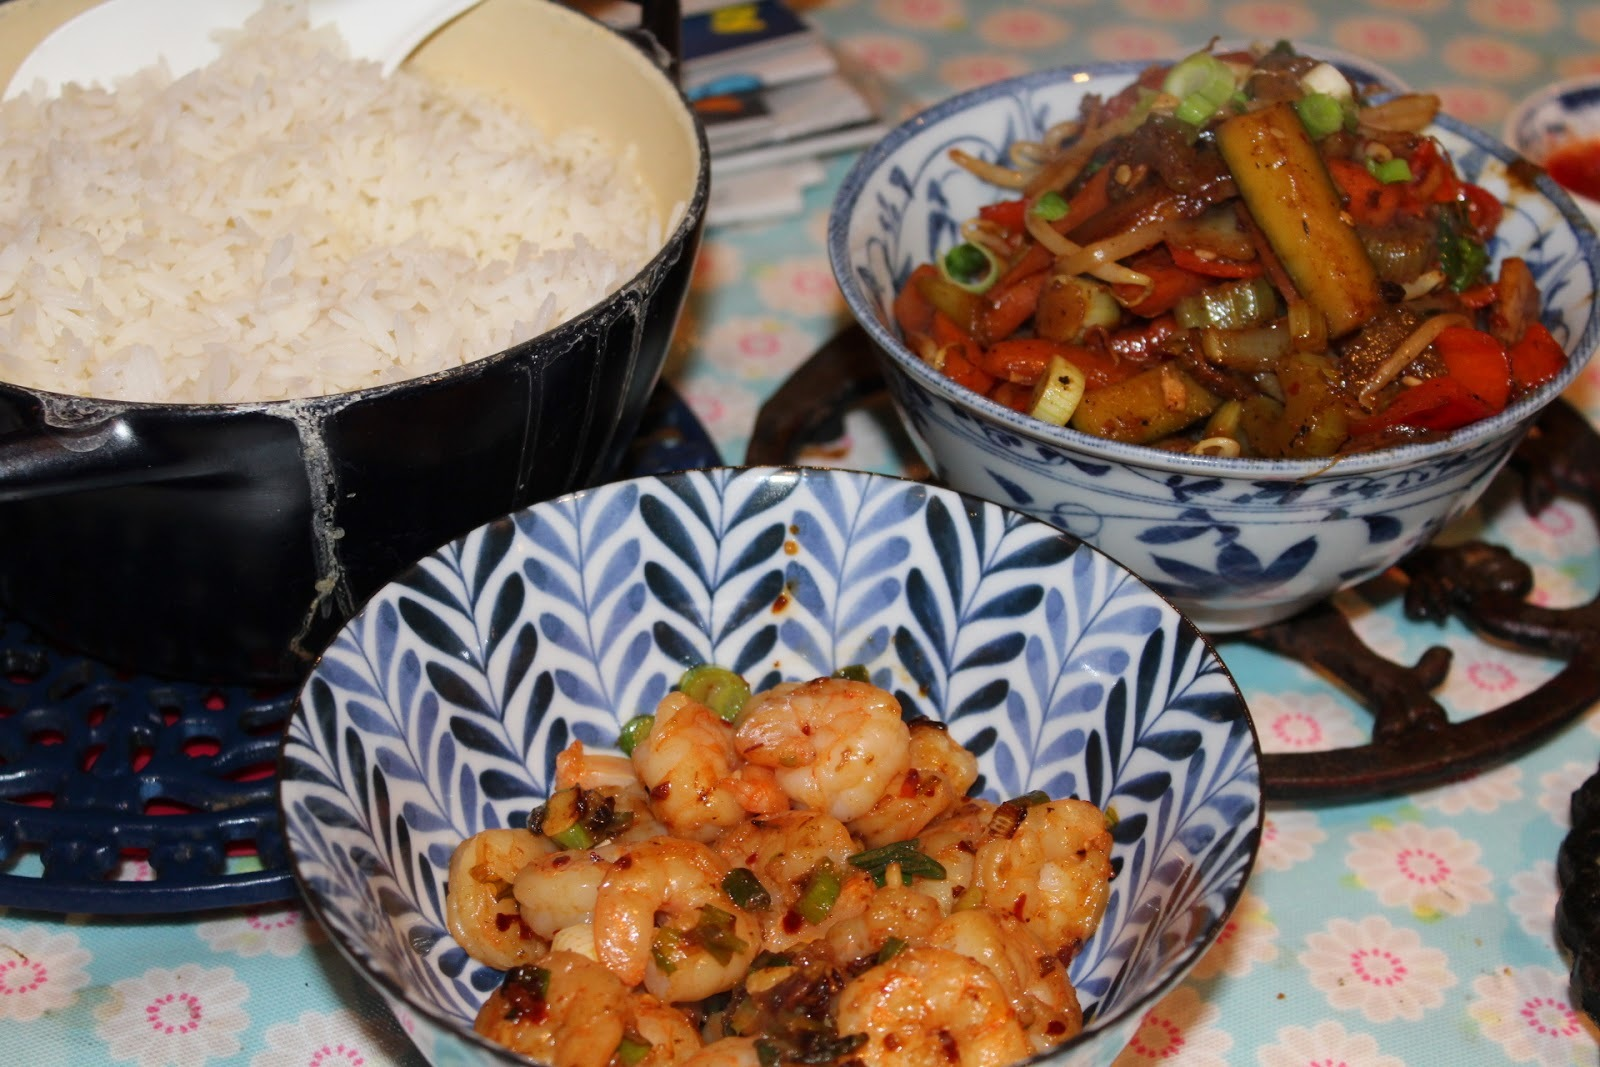 Hot spicy prawns, vegetable stir fry ... more Chinese New Year deliciousness